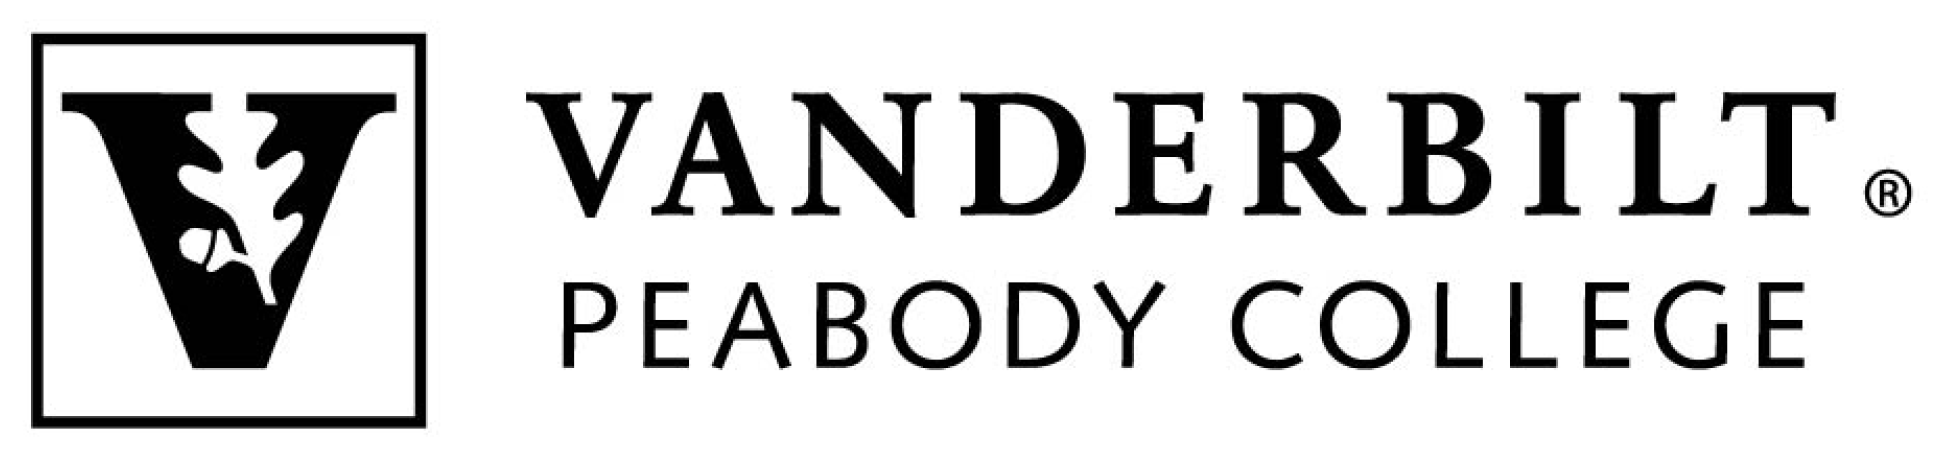 Vanderbilt University, Peabody College logo